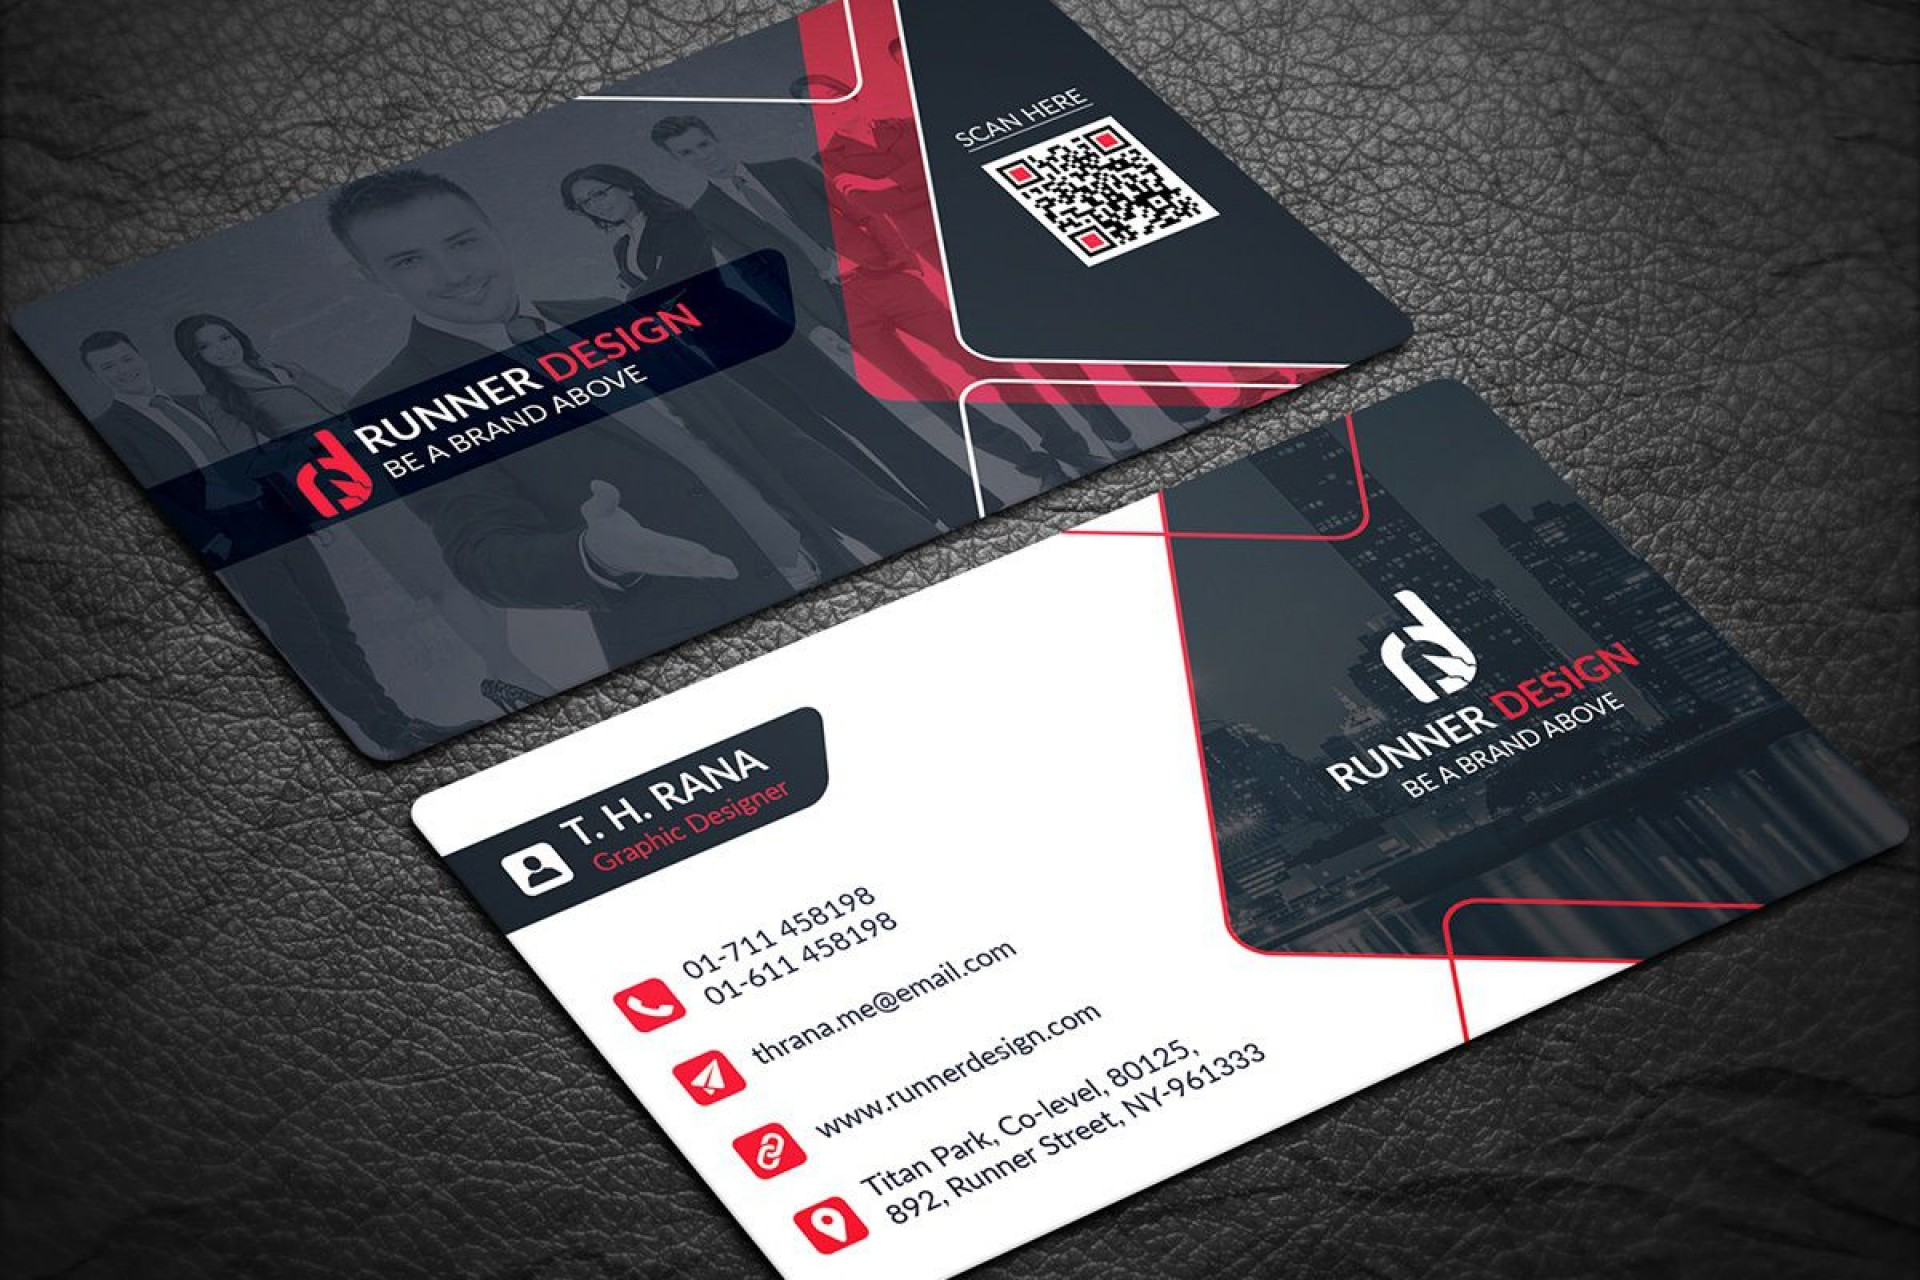 003 Dreaded Free Adobe Photoshop Busines Card Template Photo  Templates Download1920